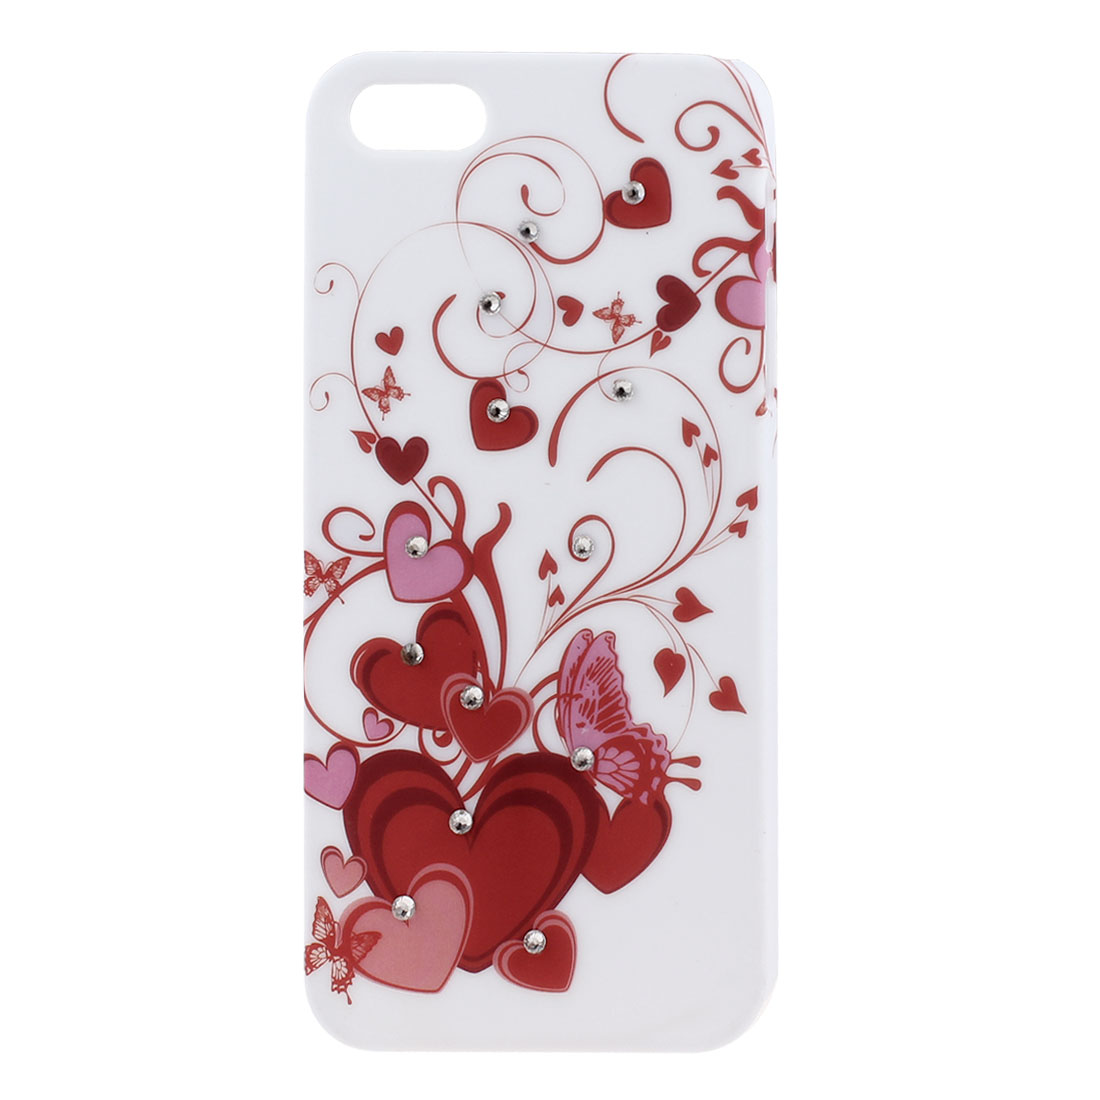 Rhinestone Decor Red Heart Hard Back Case Cover Shell Off White for iPhone 5 5G